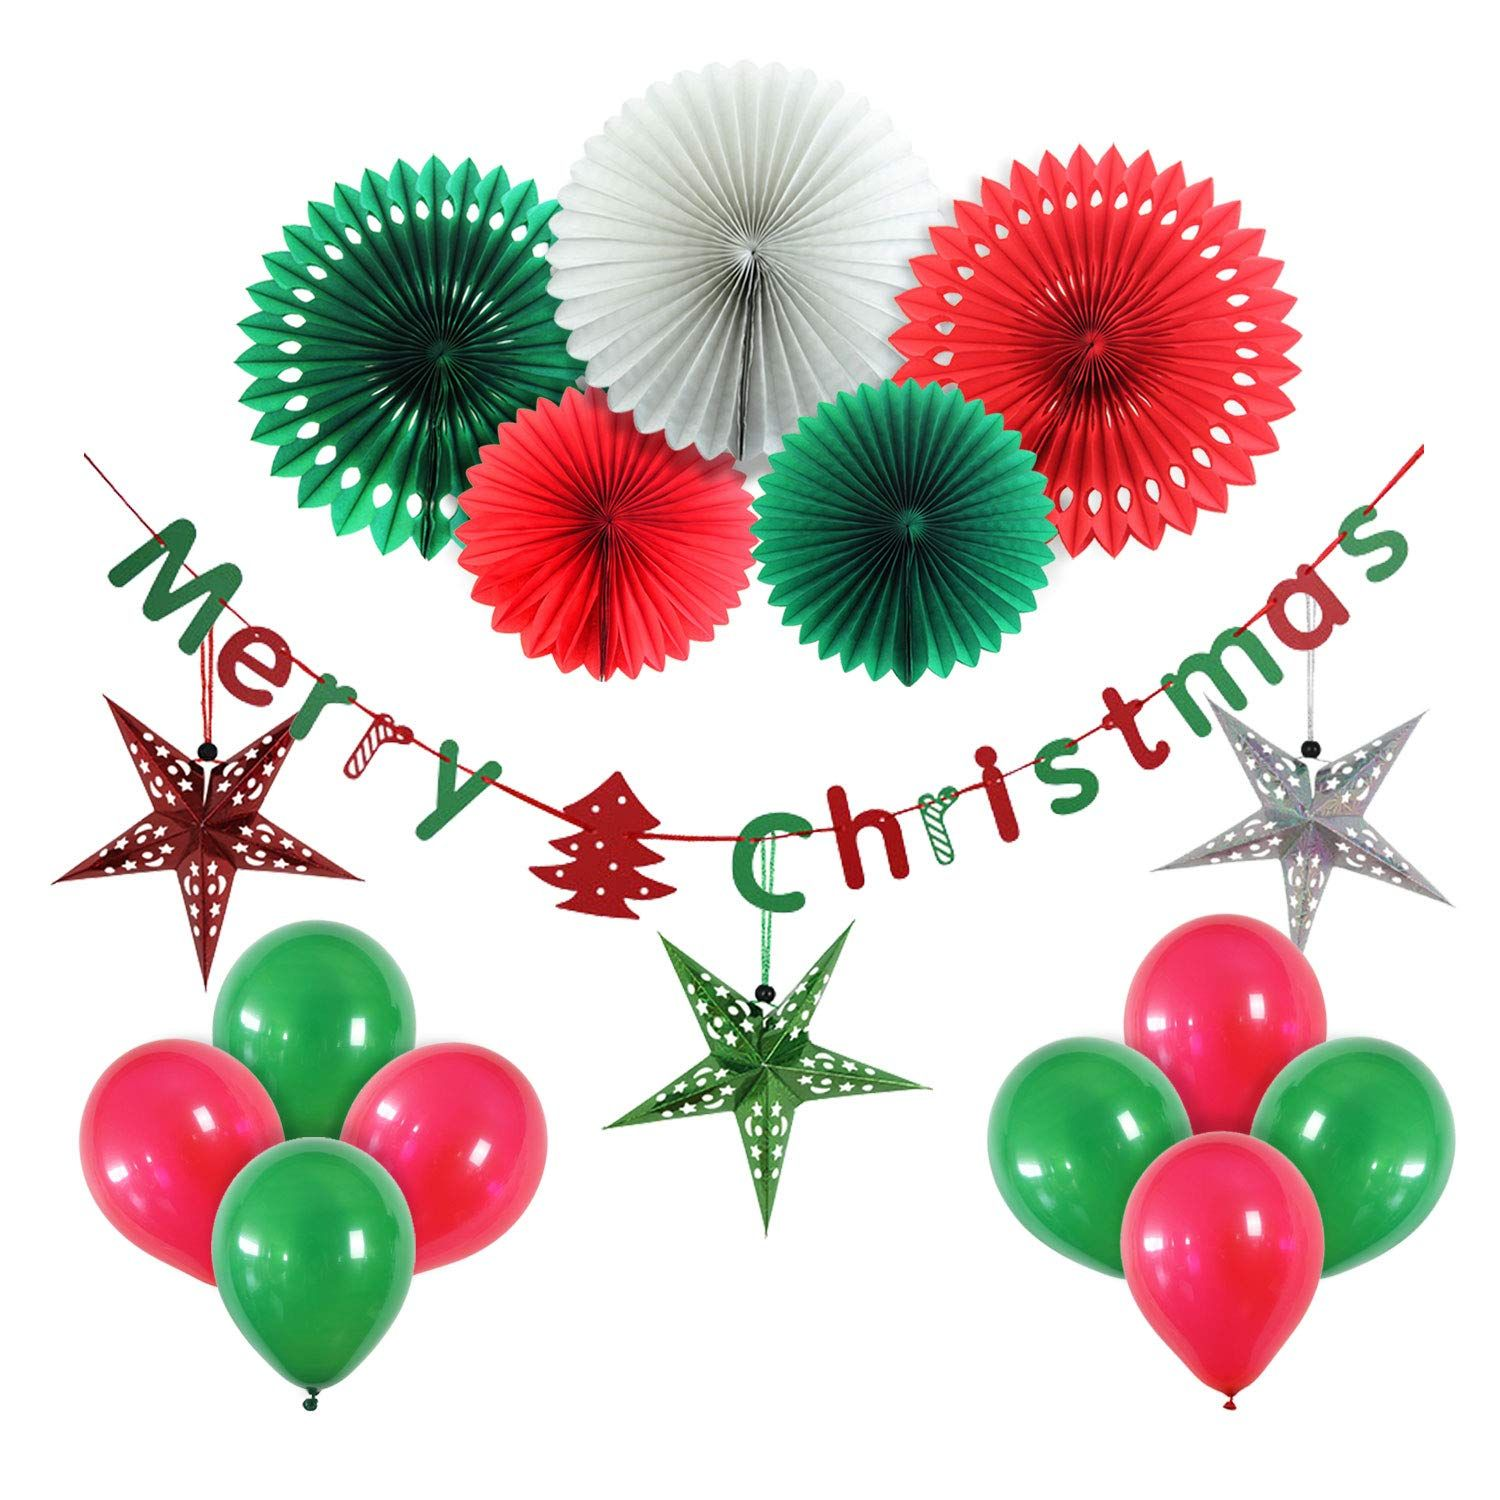 Christmas Party Decoration Set Of Hanging Tissue Paper Fans With Banner And Include Handmade Paper St Paper Party Decorations Christmas Banners Christmas Paper